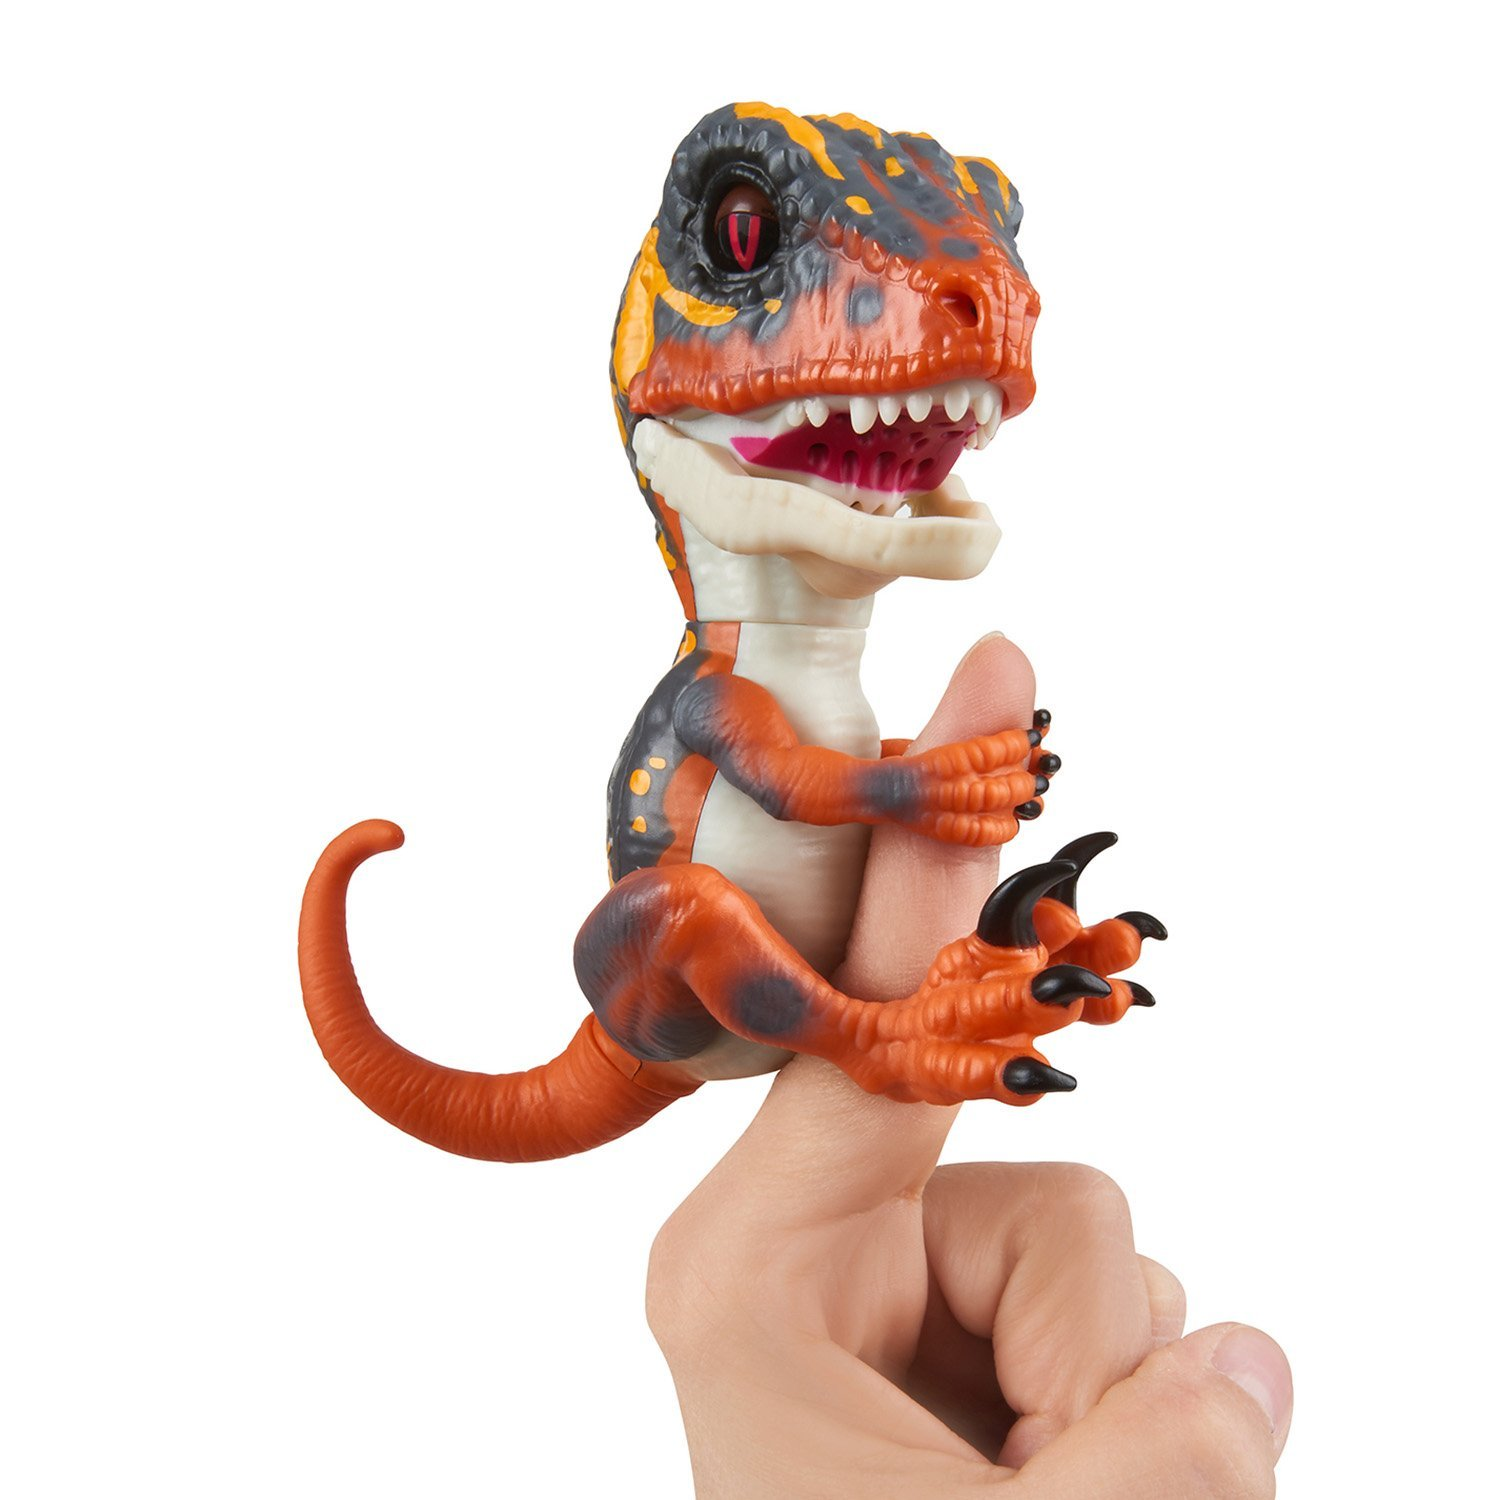 WowWee Untamed Raptor by Fingerlings Interactive Collectible Baby Dinosaur, Blaze (Orange) by License 2 Play